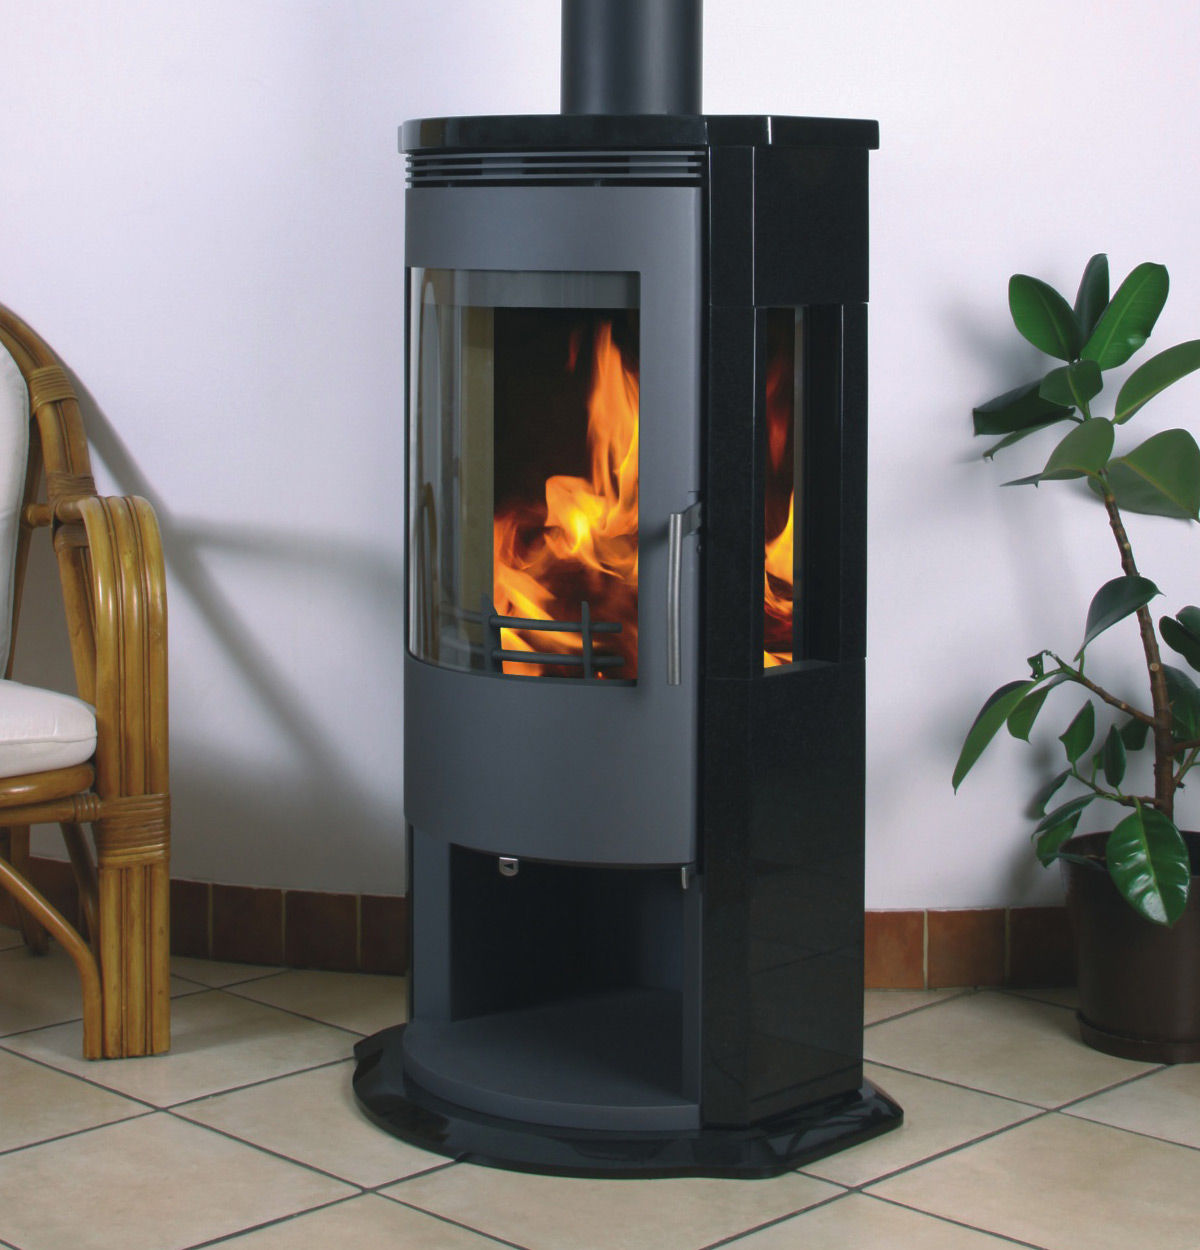 Color Fire Kaminofen Wood Heating Stove Contemporary Natural Stone A3 Arena